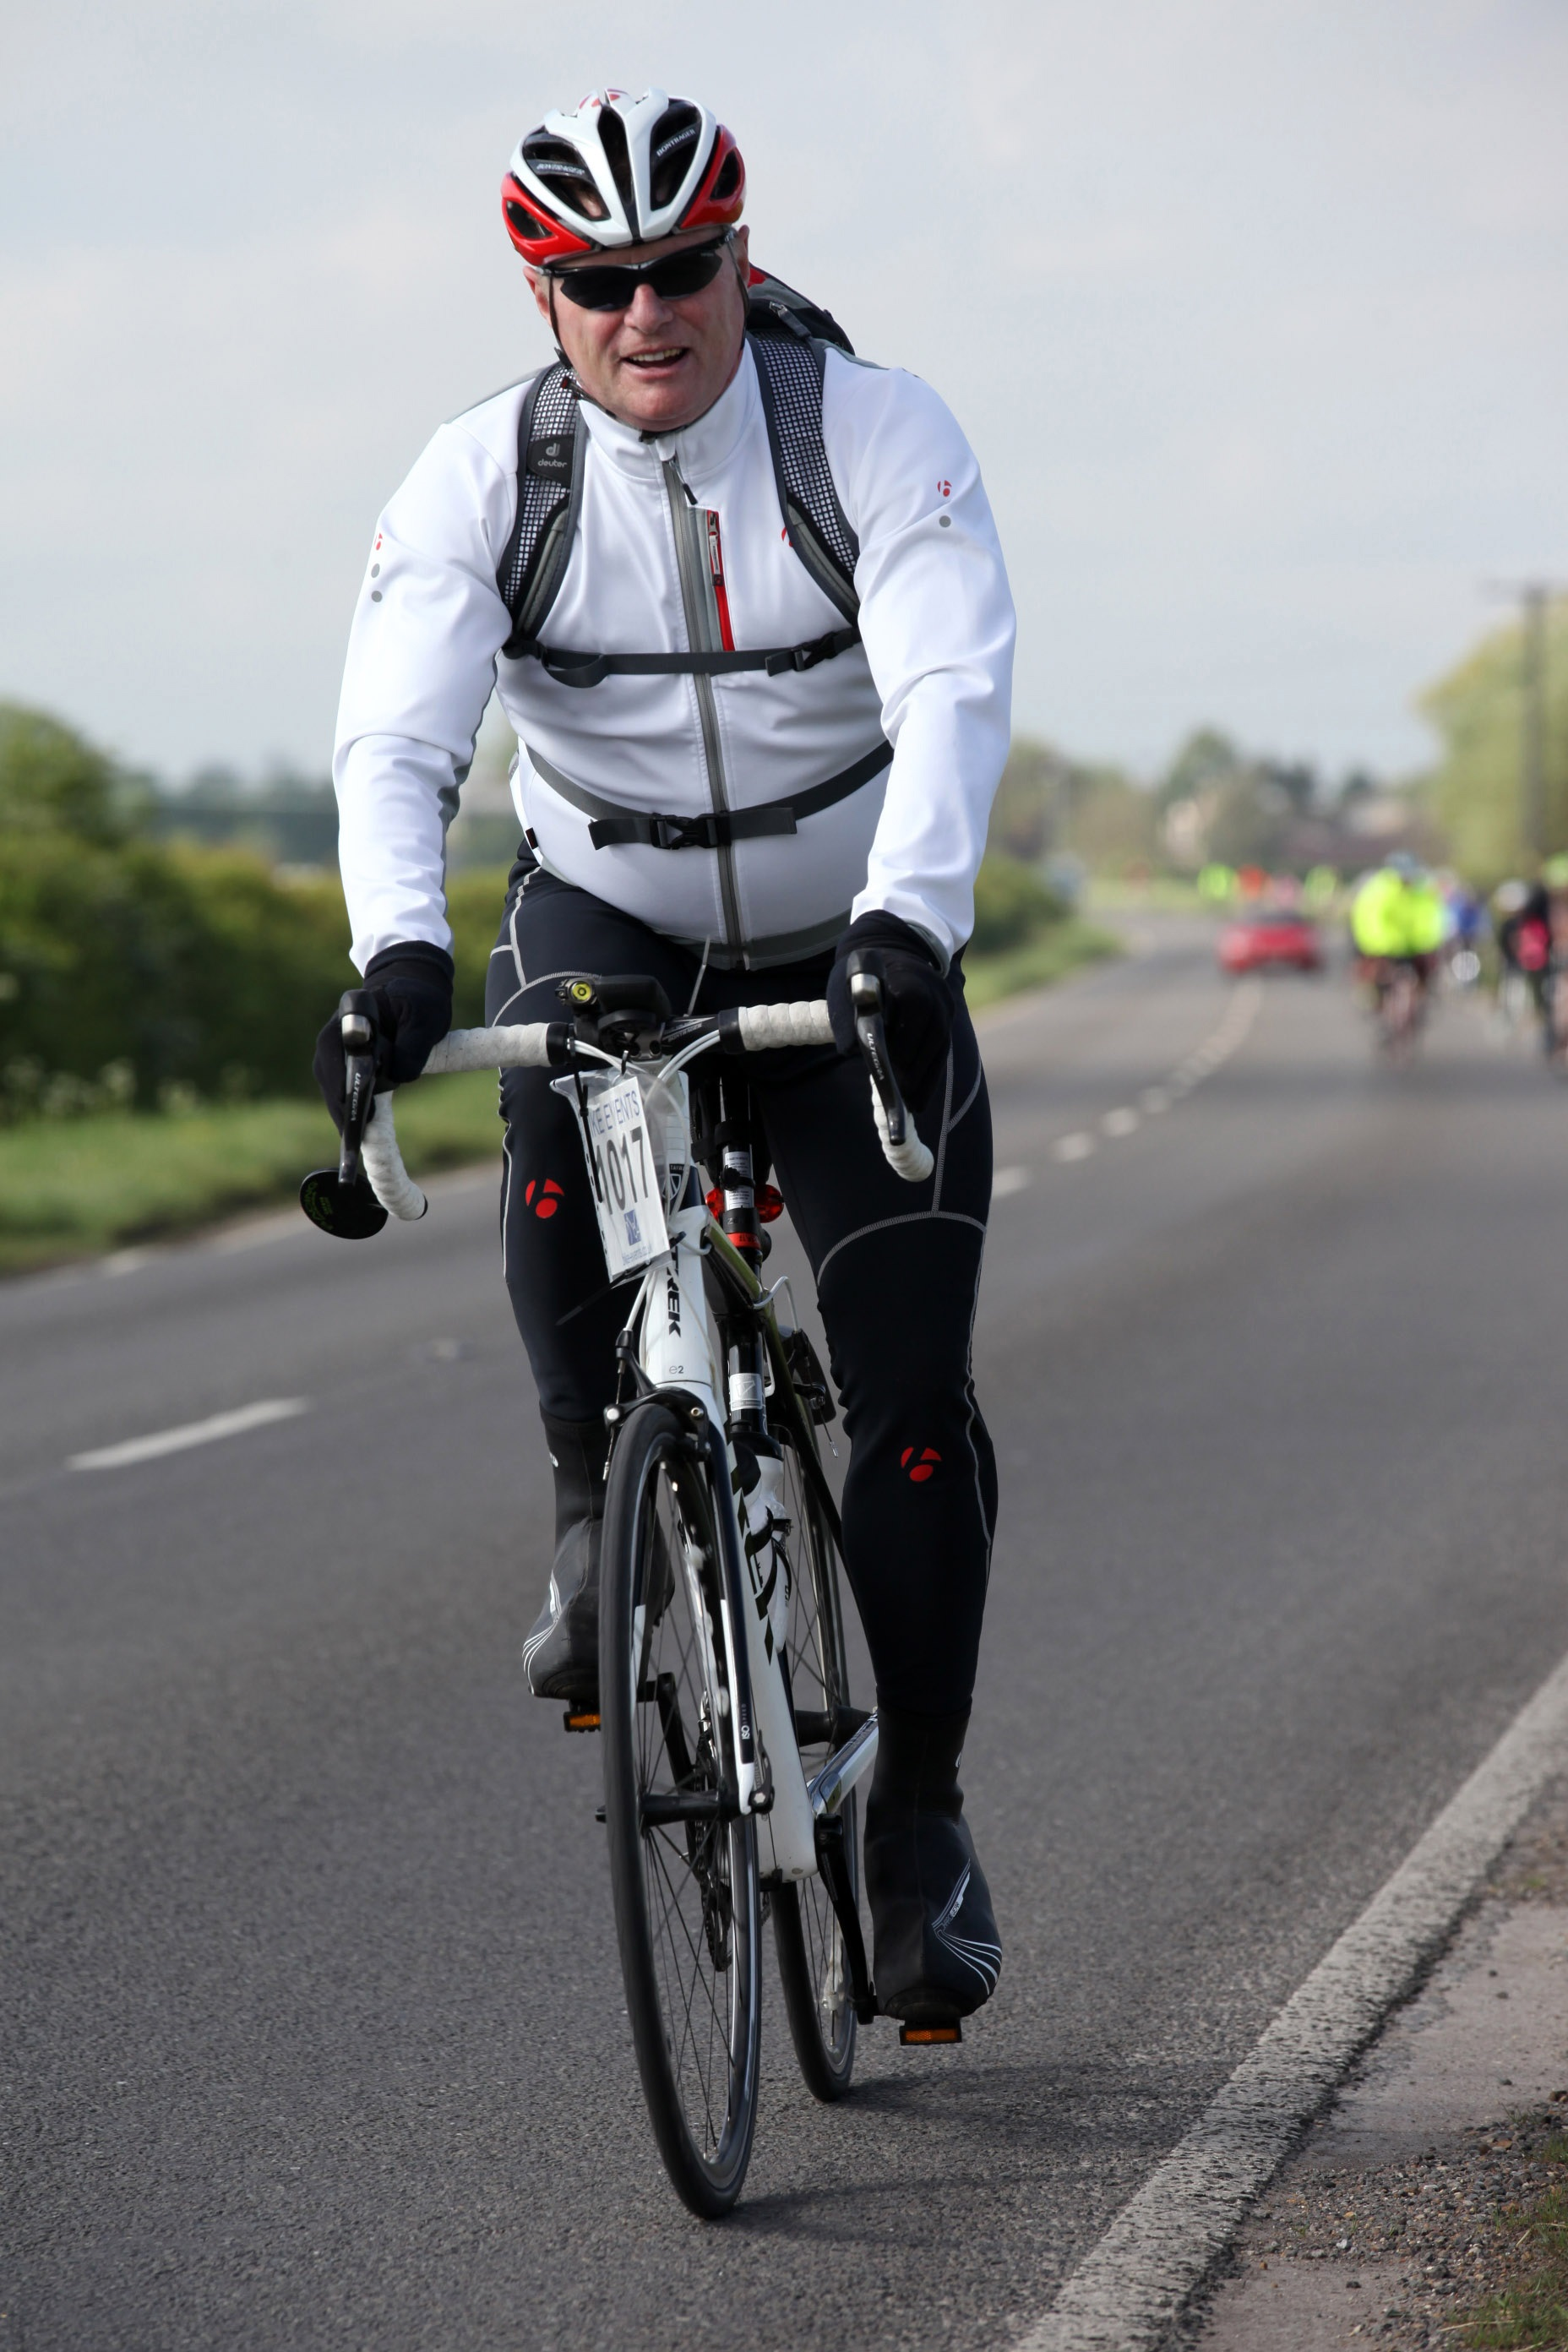 On his bike – David Allen is cycling 200 miles in aid of Diabetes UK